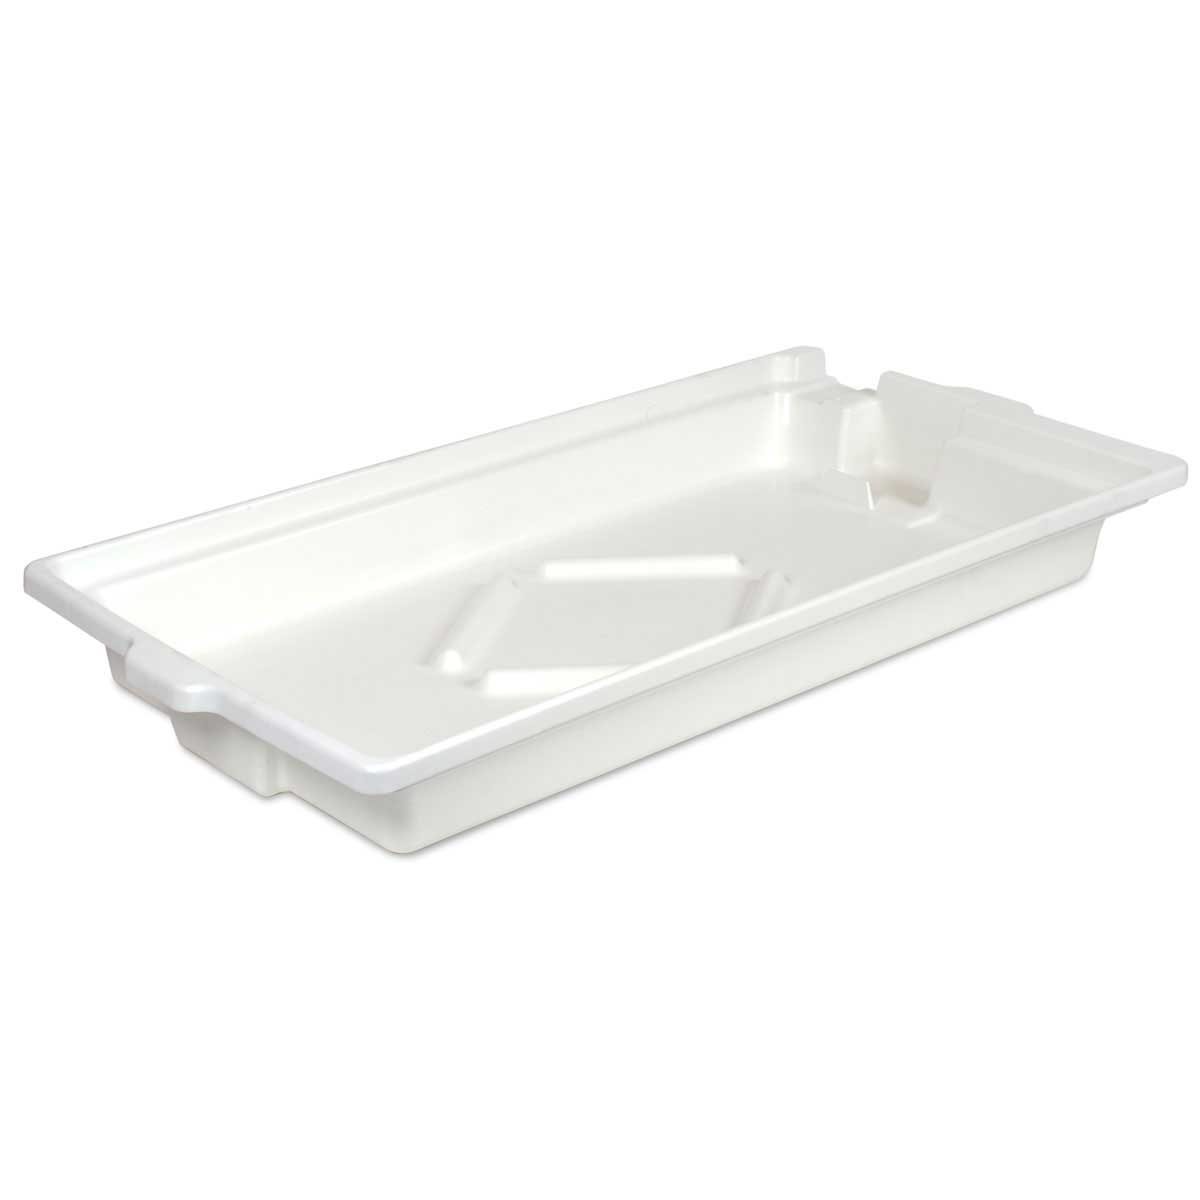 Replacement Water Pan for MK-660, 770, and 1080 Tile Saws